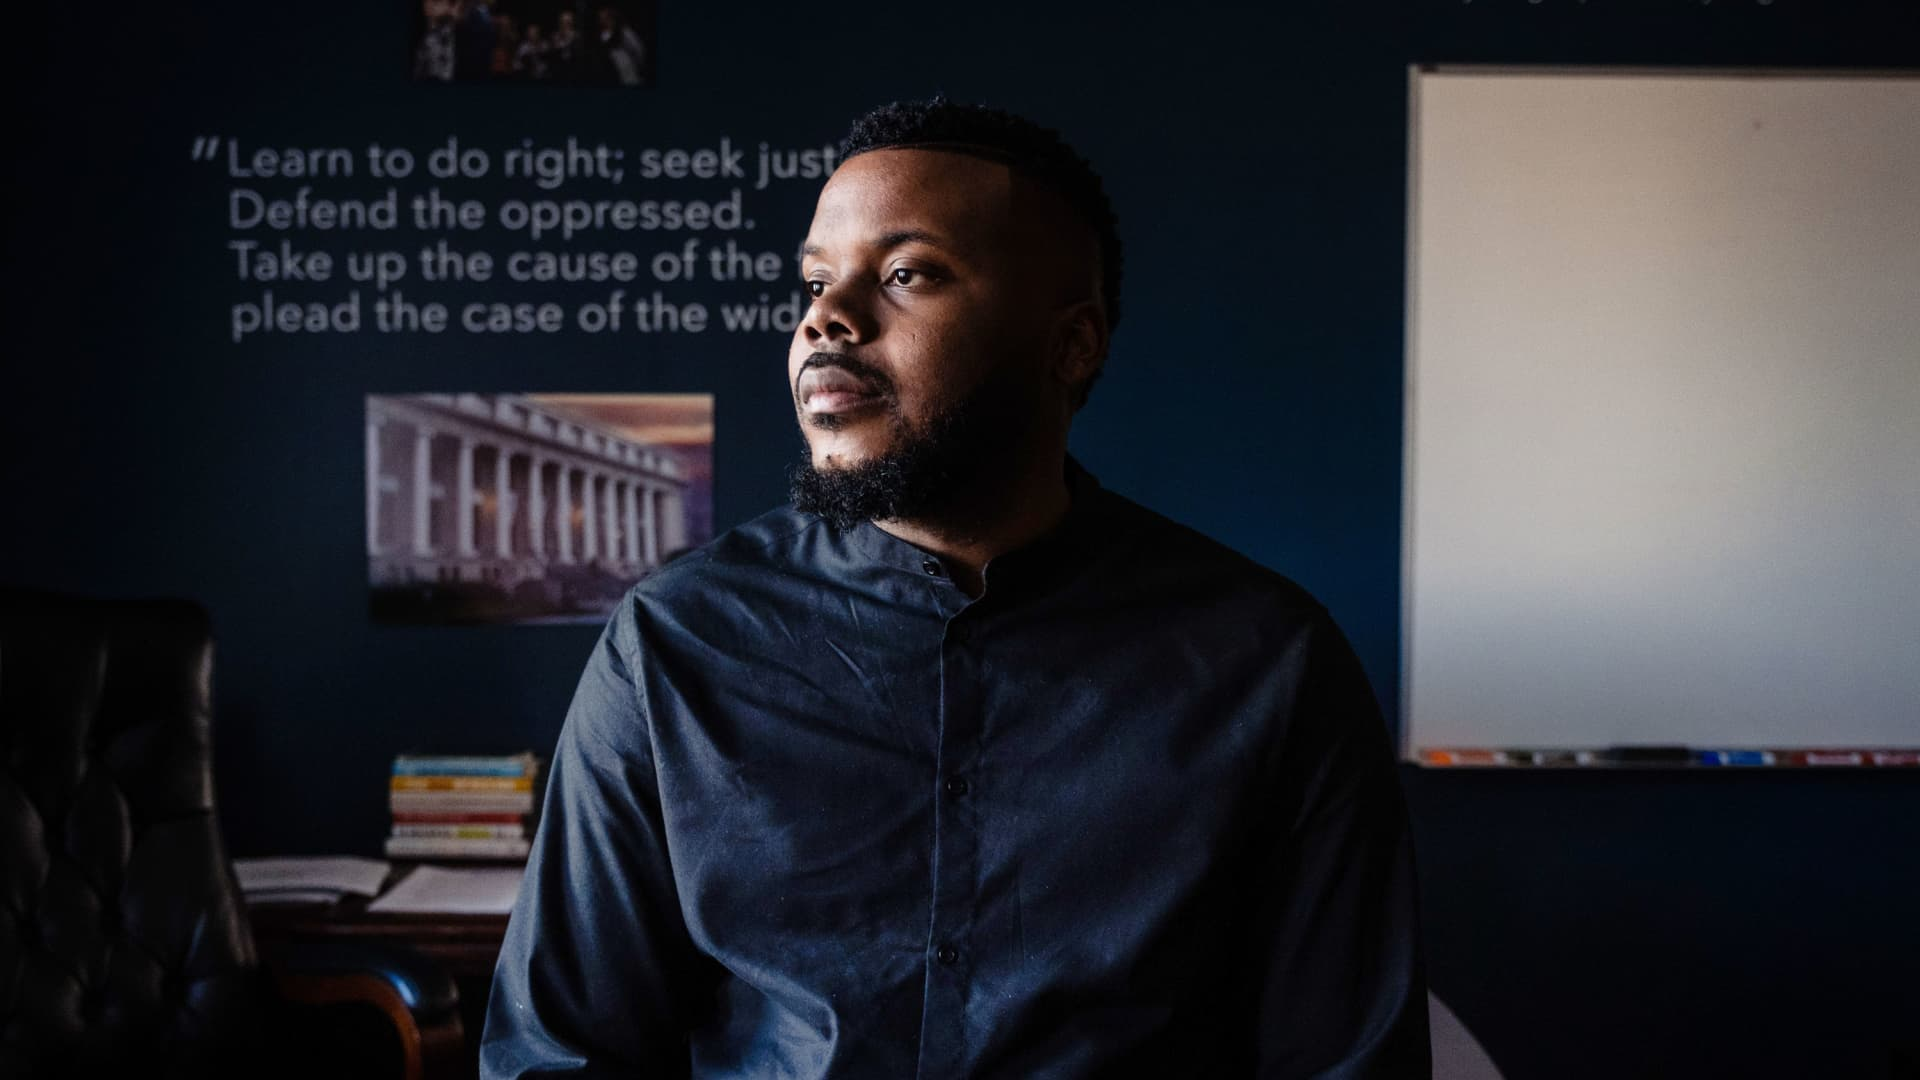 Michael Tubbs, Mayor of Stockton, poses for a photograph at his office in Stockton, California on February 7, 2020.